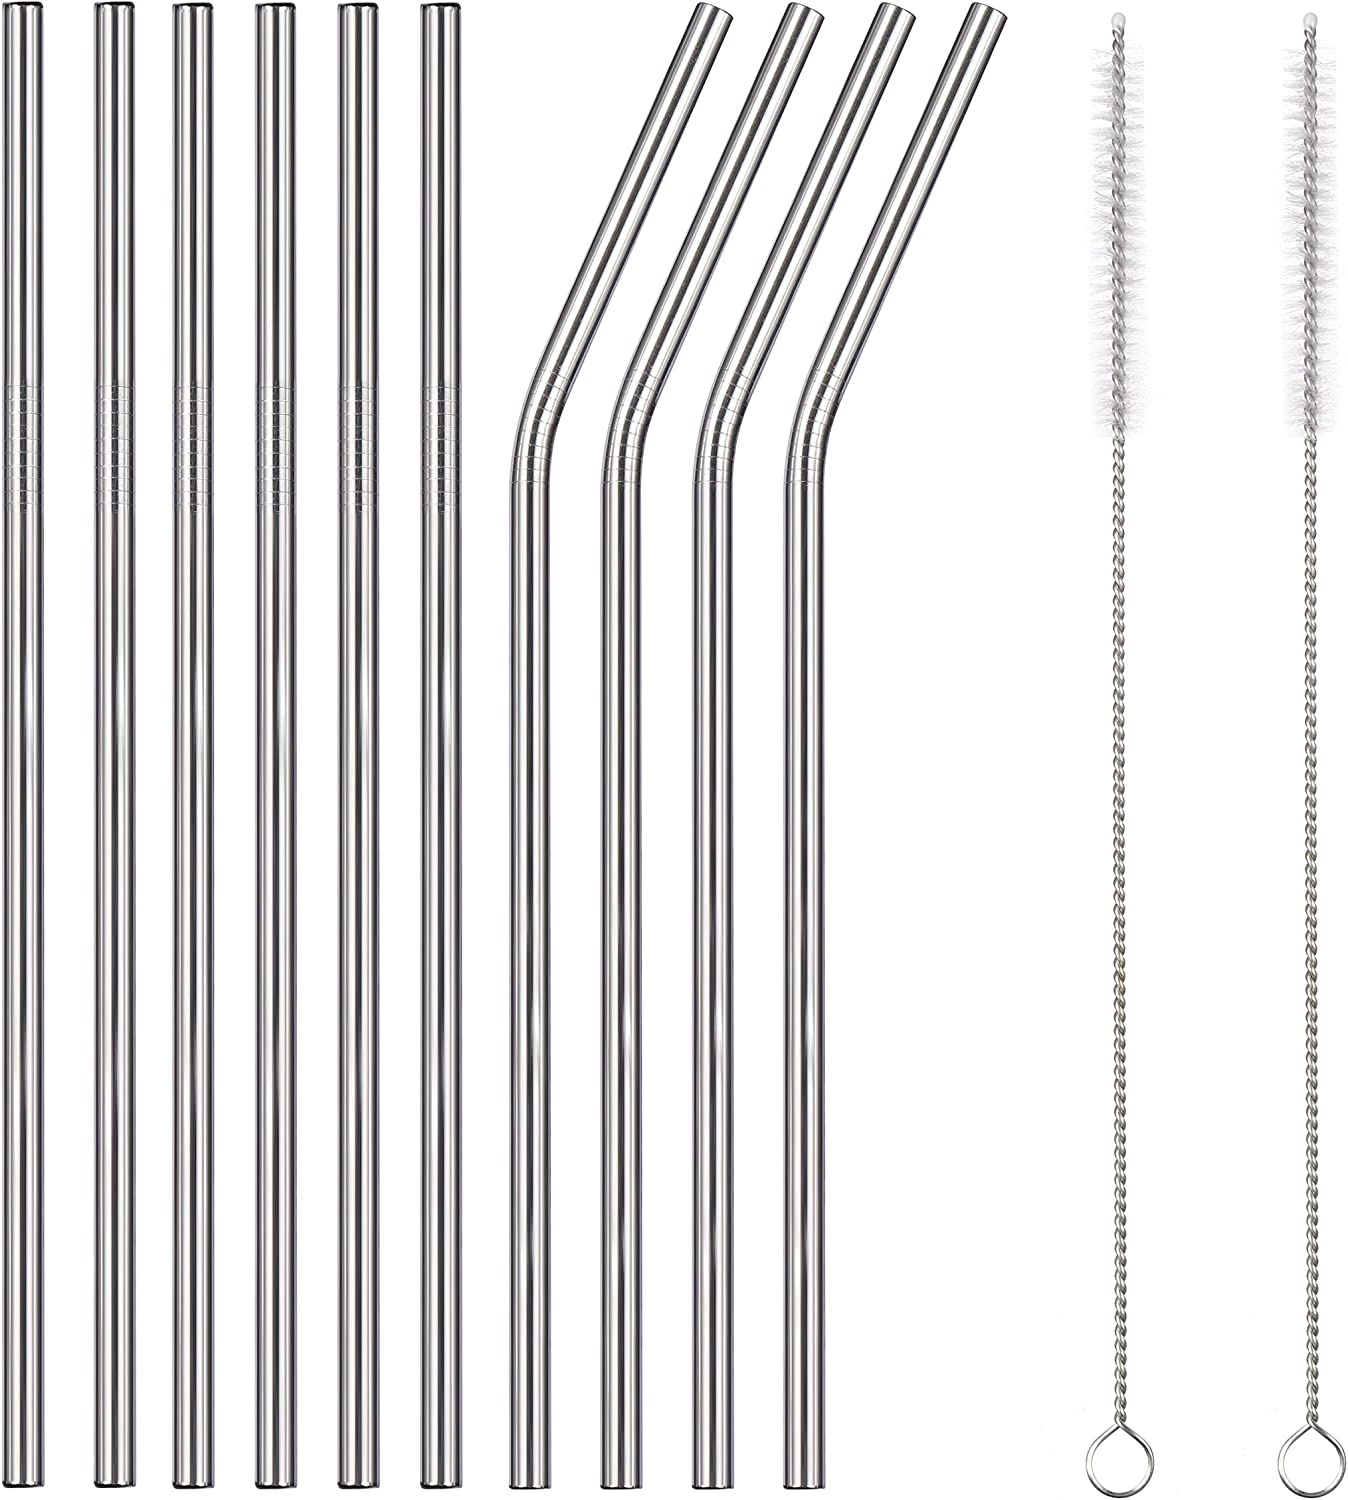 HUAFUCI 12-Pack Stainless Steel Metal Straws Reusable with 2 Cleaning Brushes - Curved Drinking Straws for 20oz Tumblers Dishwasher Safe (Silver)